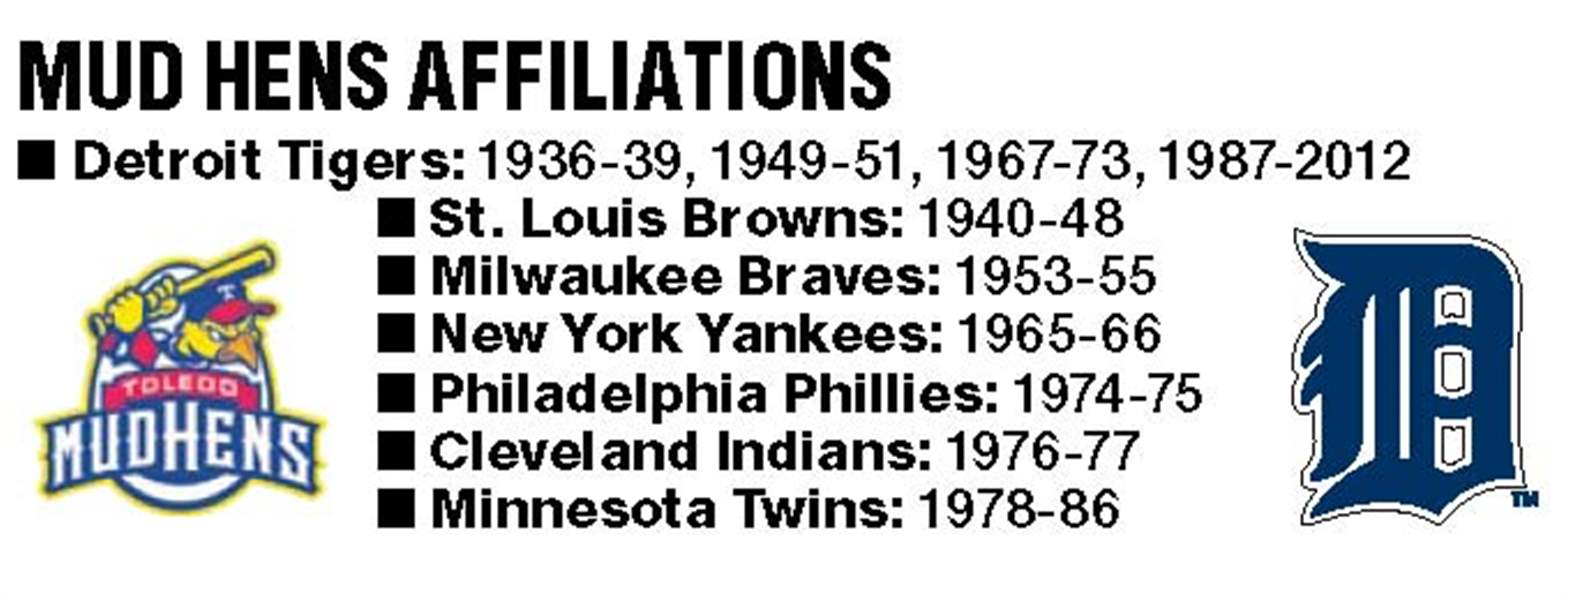 Mud-Hens-affiliations